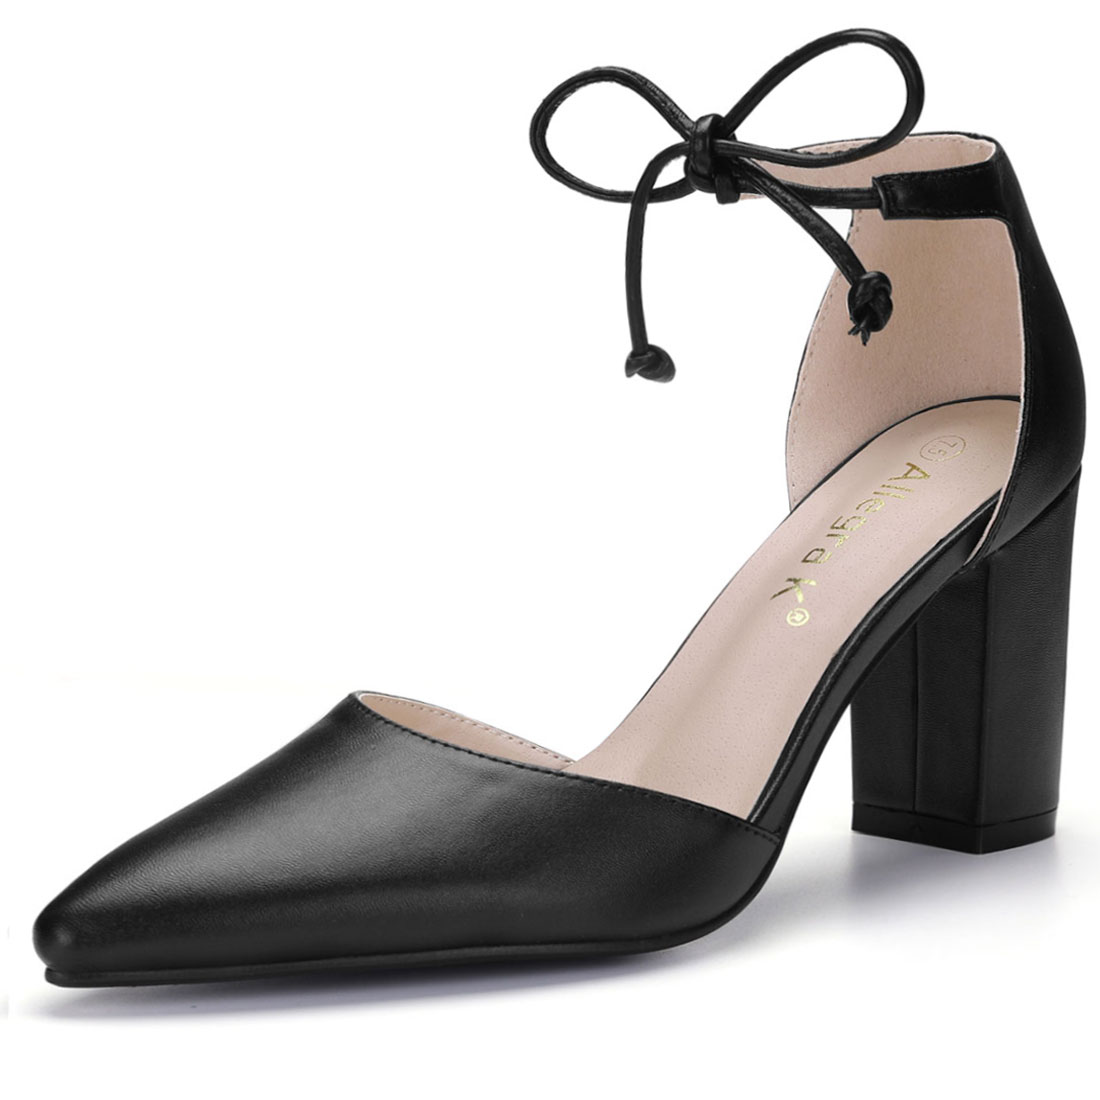 Allegra K Women's Ankle Tie Chunky Heel Pointed Toe Dress Pumps Black US 10